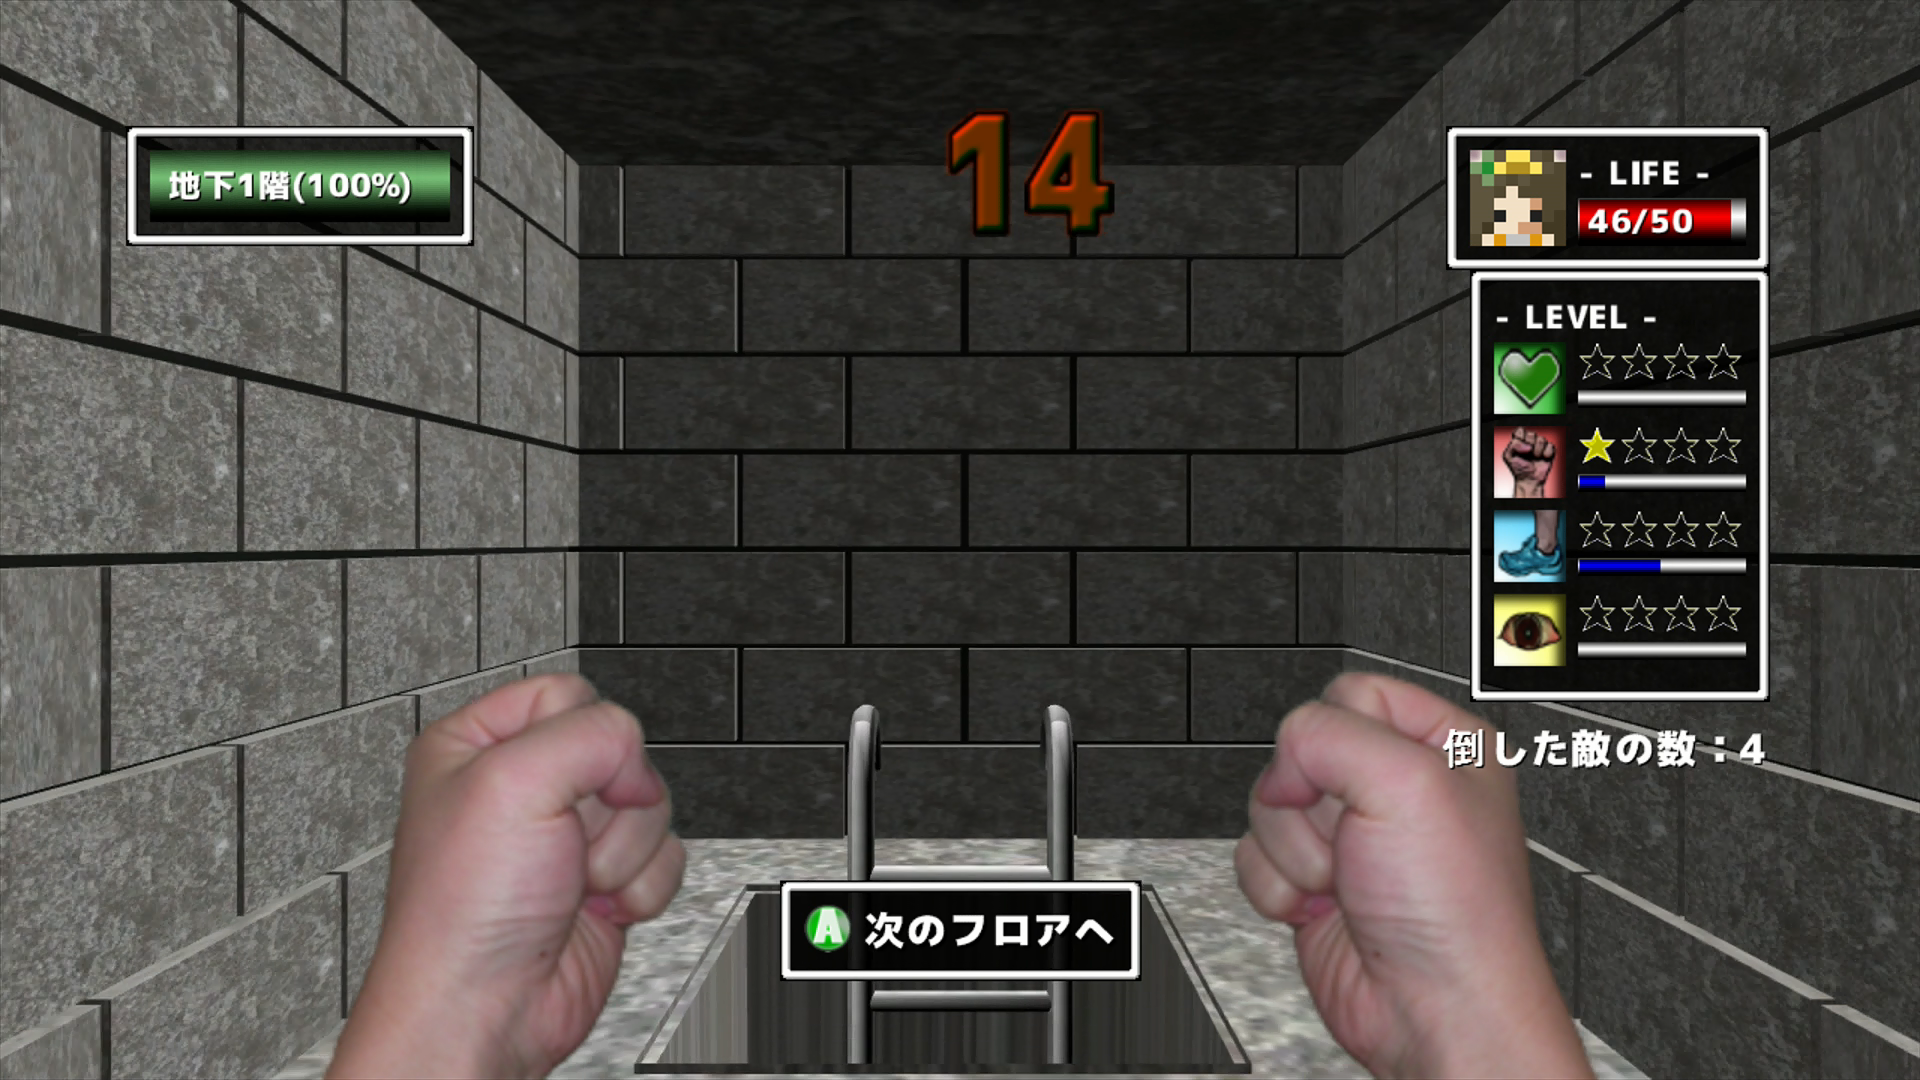 Yukkuri no Meikyū Xbox 360 ...while ladders lead to the next floor.